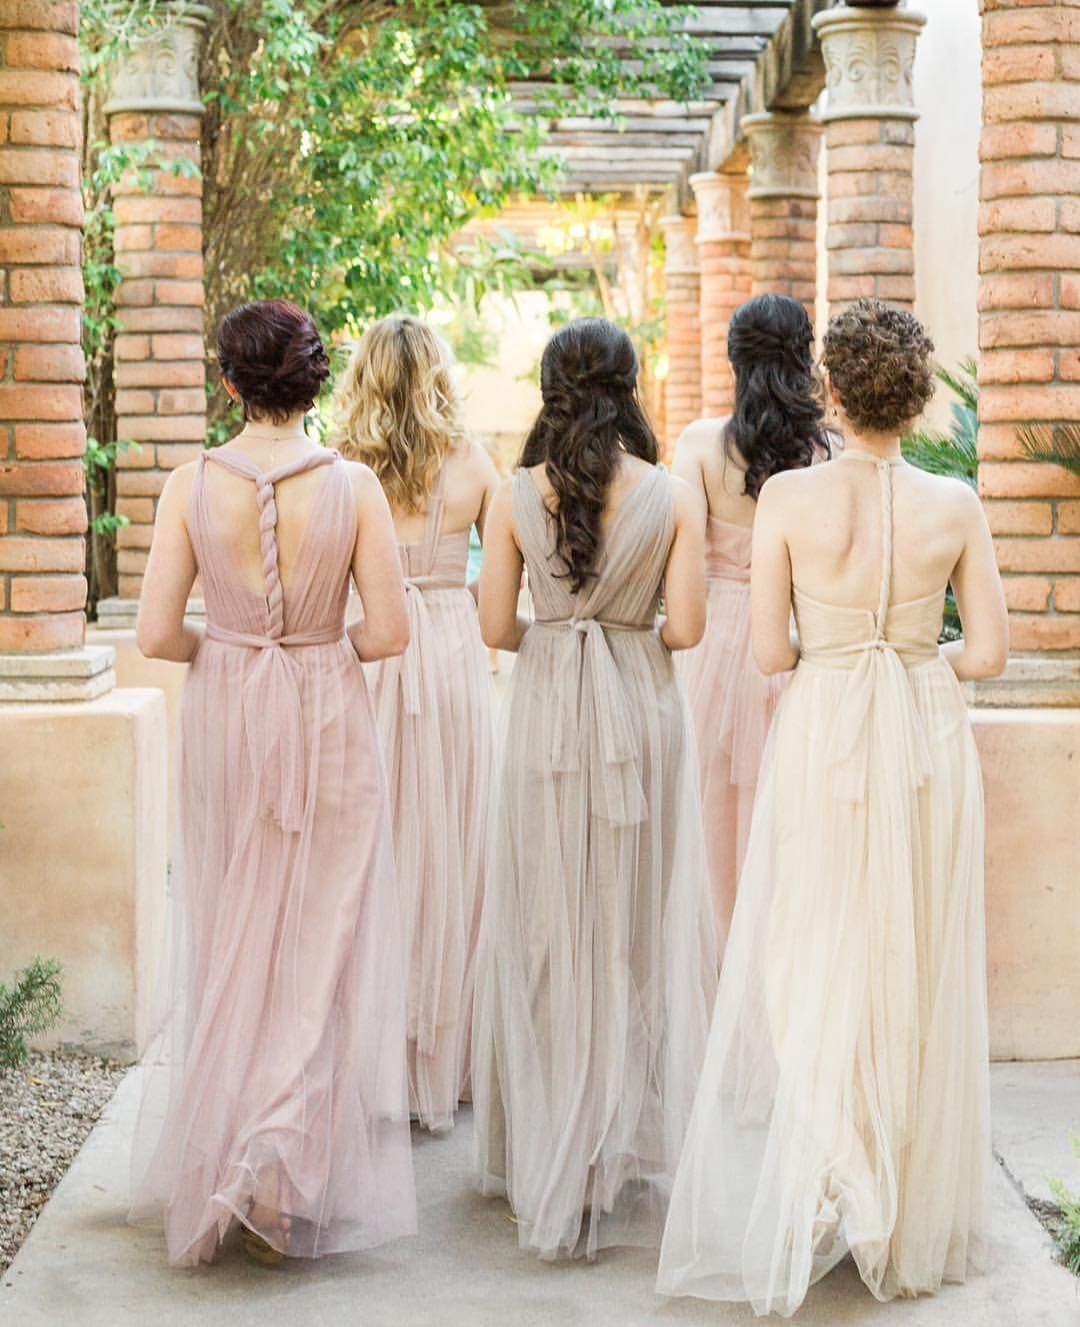 0d04188462e Annabelle Dress in Shades of Neutrals! So many ways to tie the back!Jenny  Yoo Bridesmaids